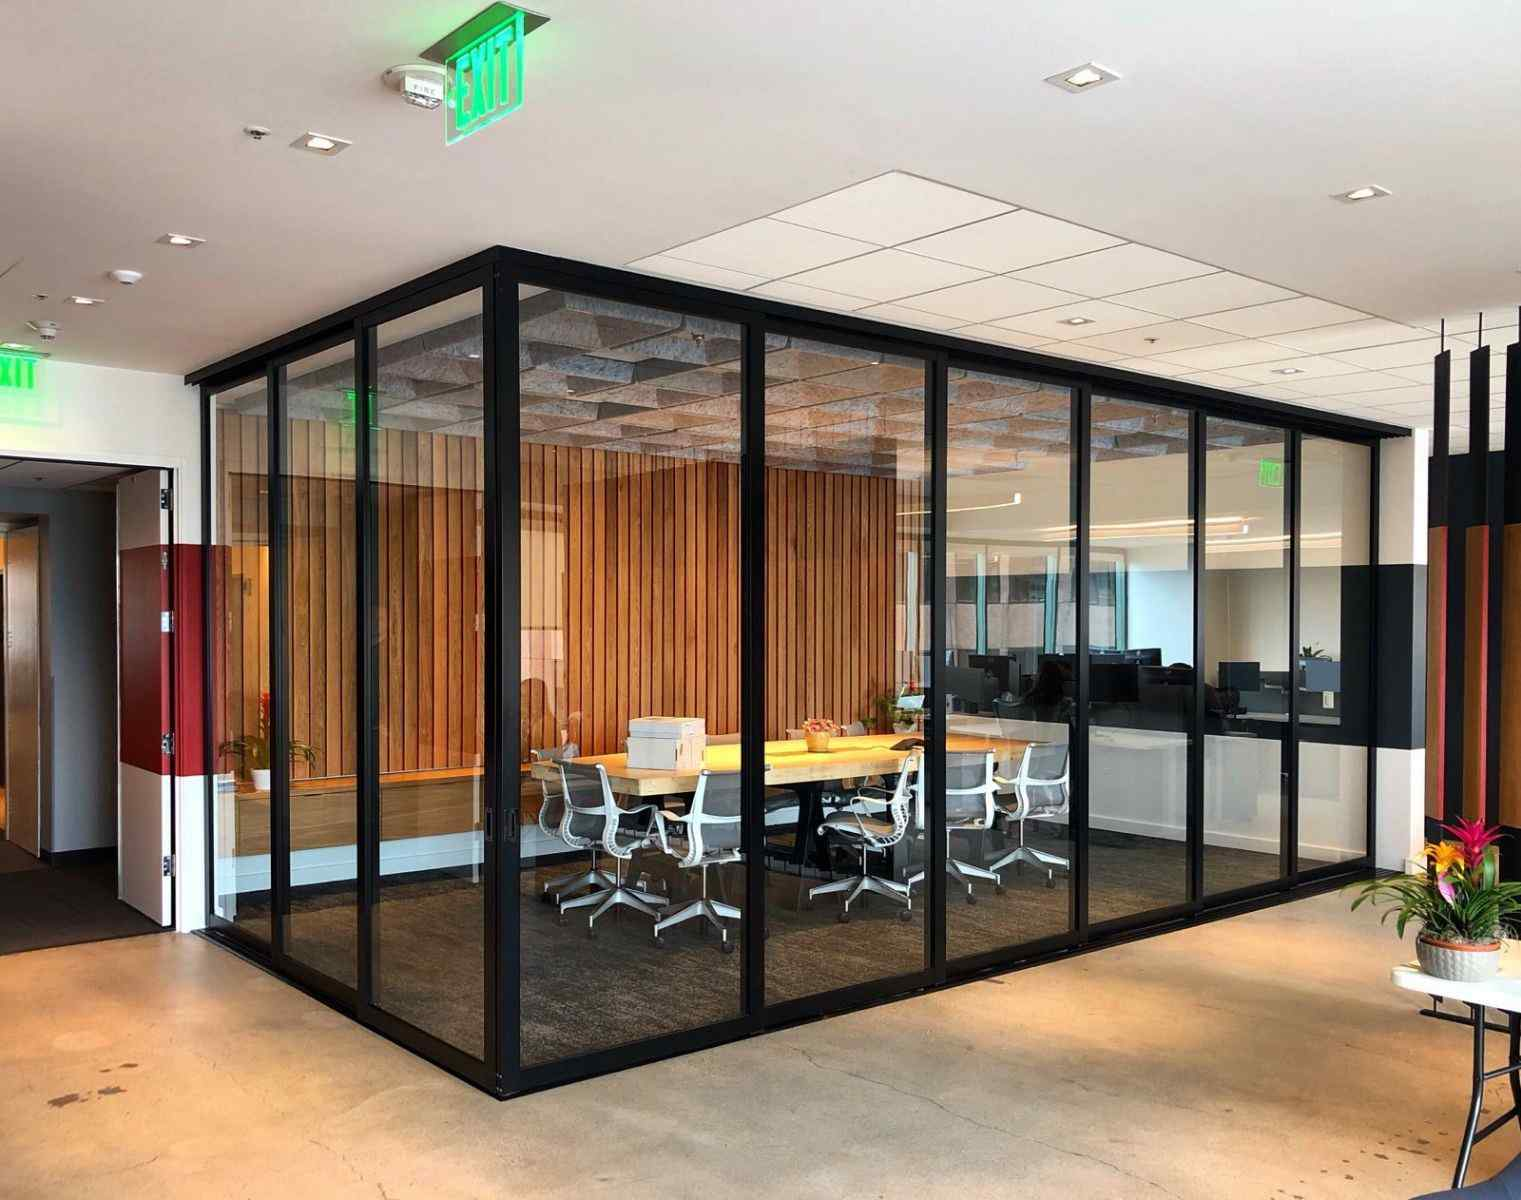 office conference room divider 6 Doors on 6 Tracks 3 Doors Triple Track Black 3 Inch Clear Solo Closed Best